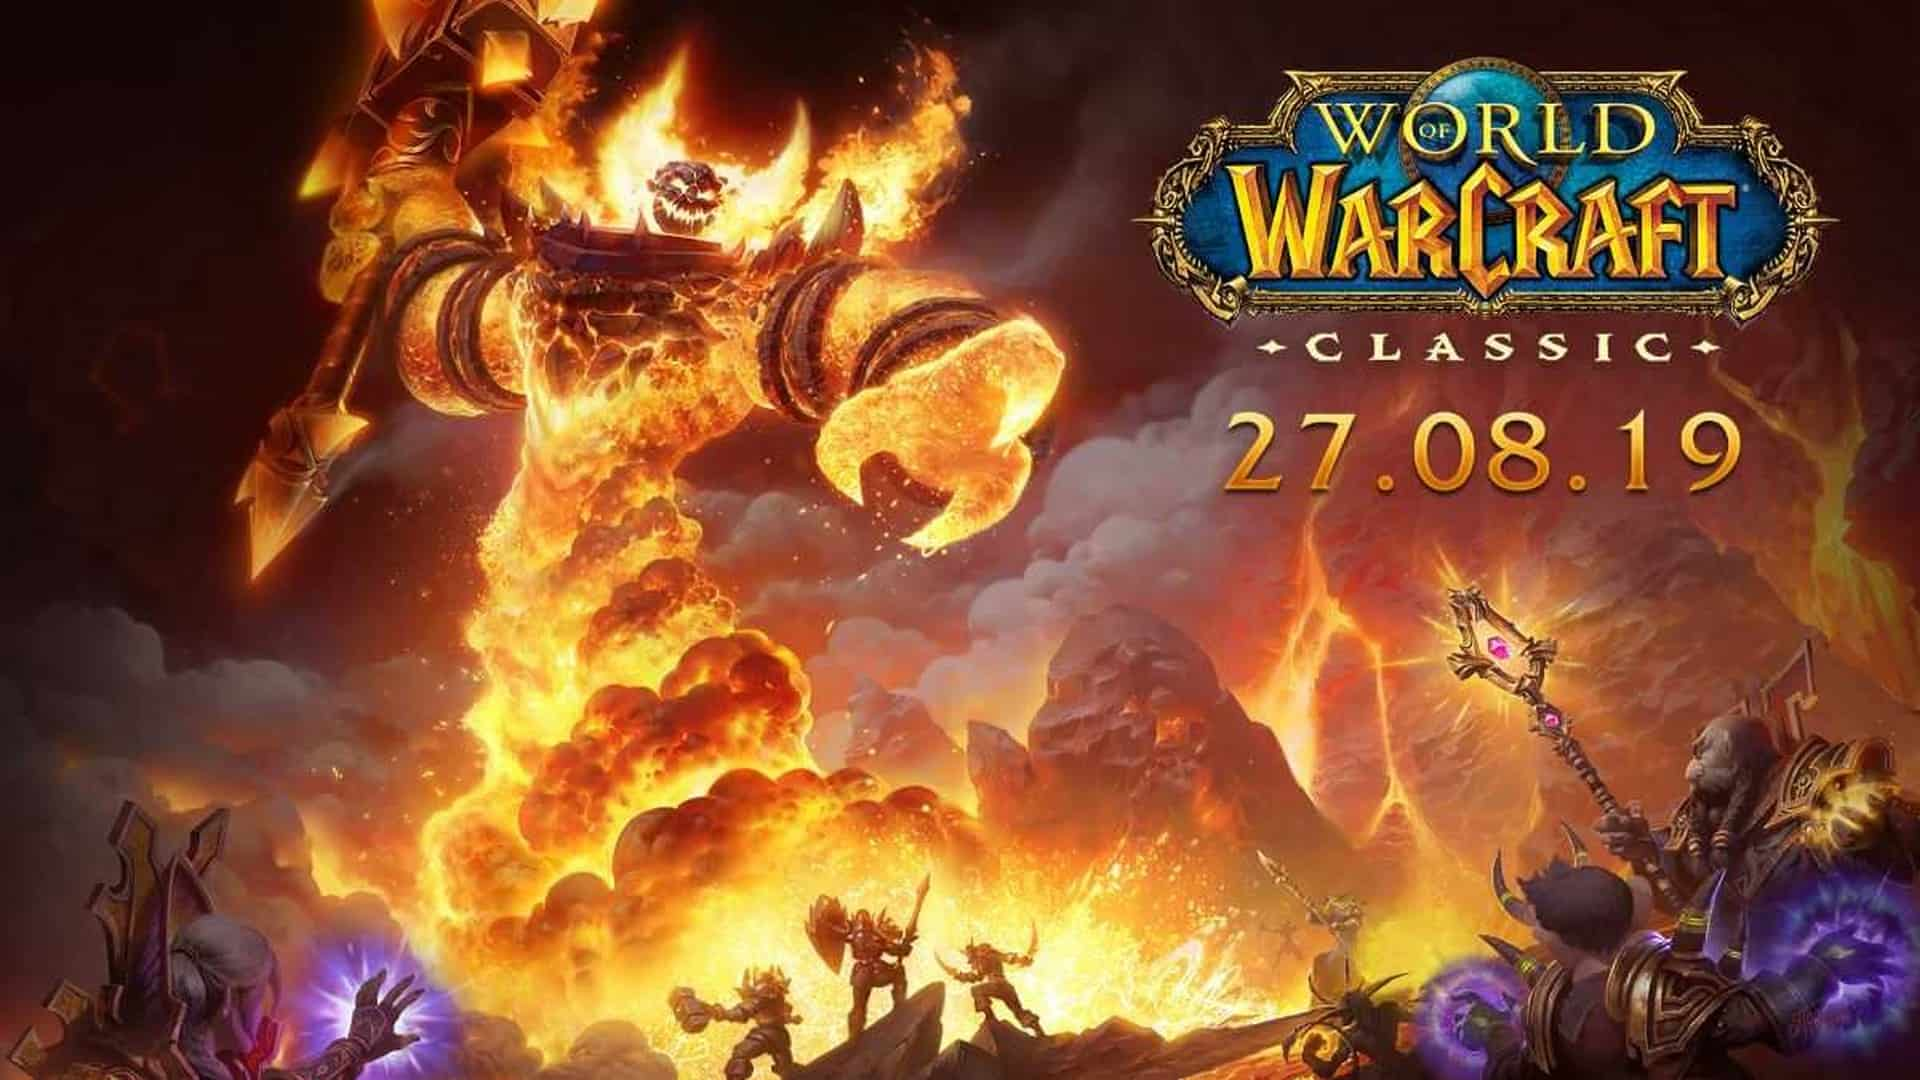 World of Warcraft Classic Servers in Australia & New Rise of Azshara Content Now Live